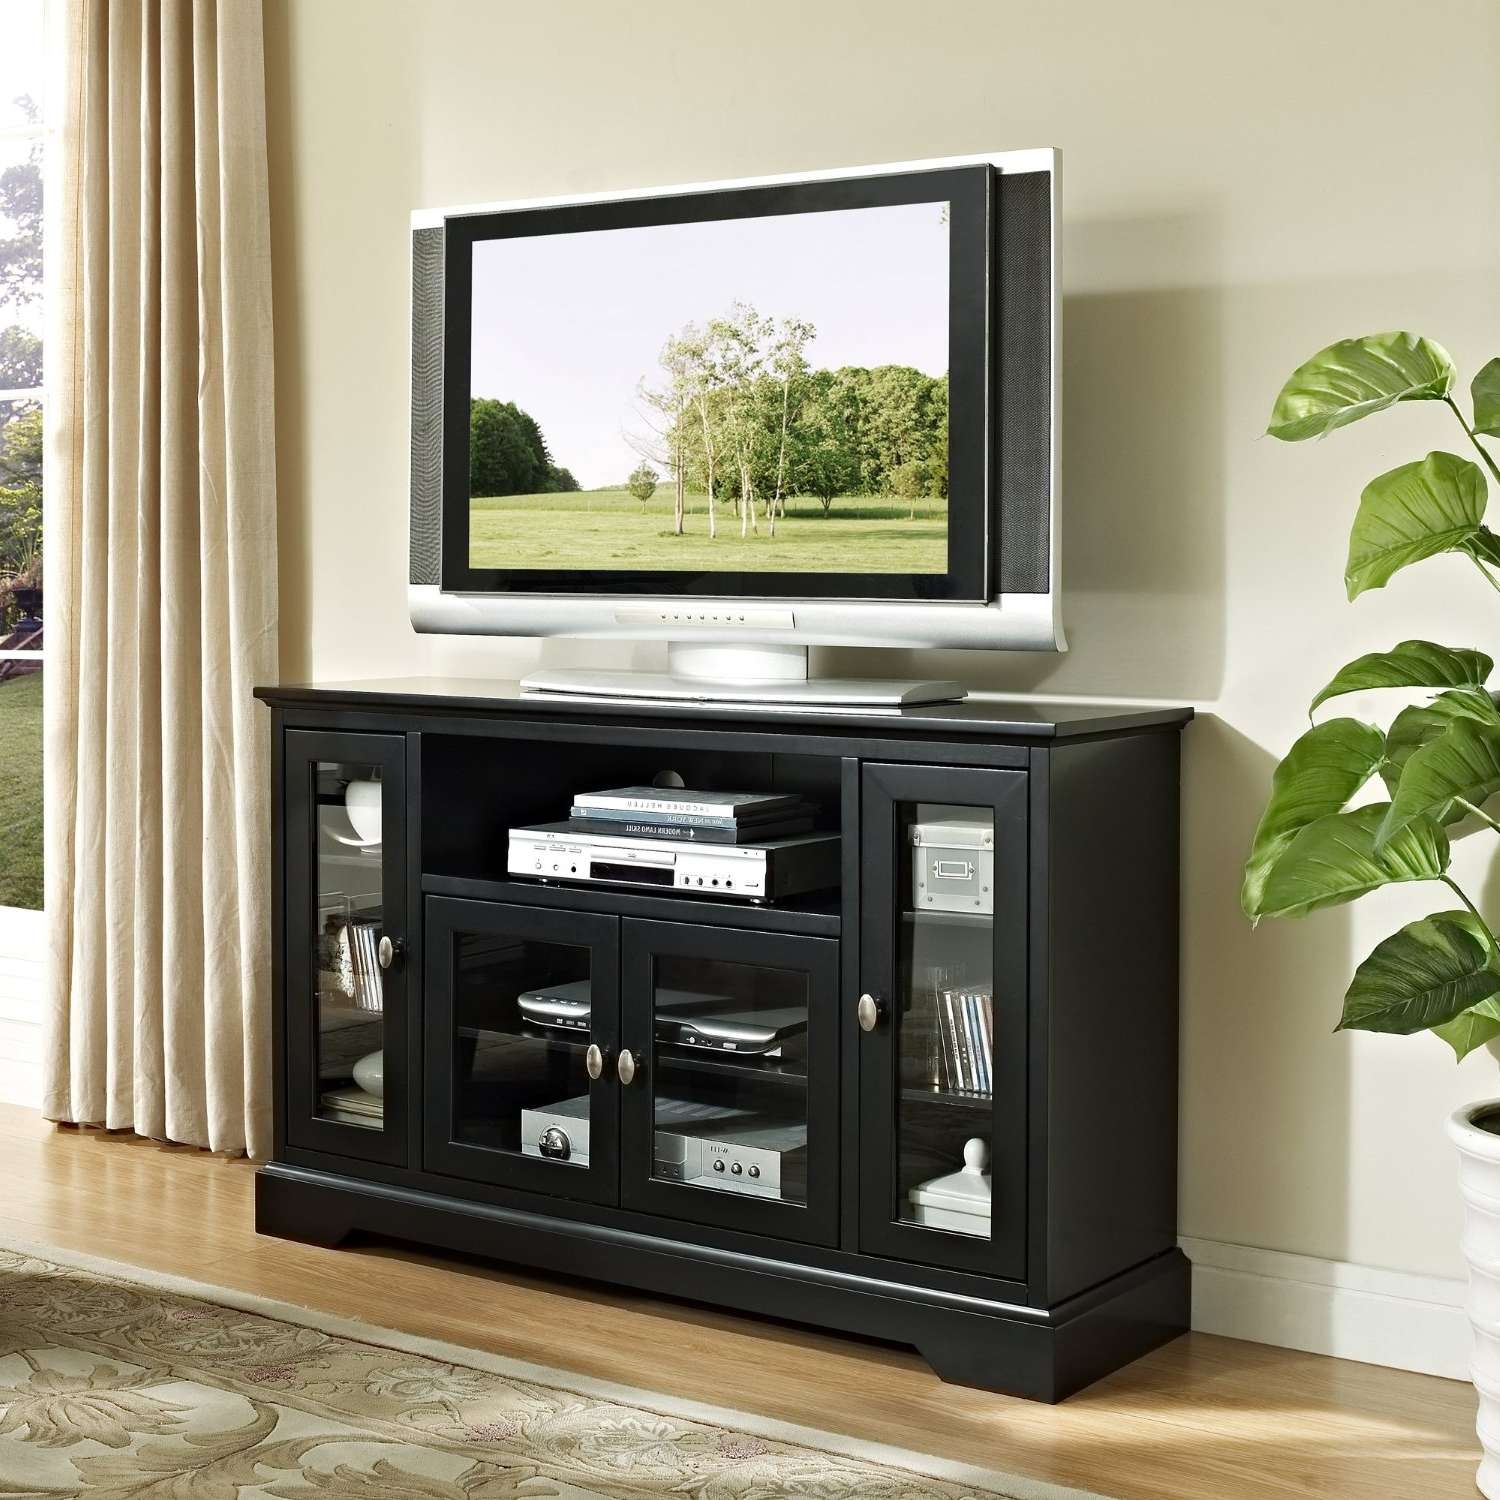 Light Wood Tv Stand Simple Room With Ikea Besta Media Cabinet Of Pertaining To Wooden Tv Cabinets With Glass Doors (View 9 of 20)